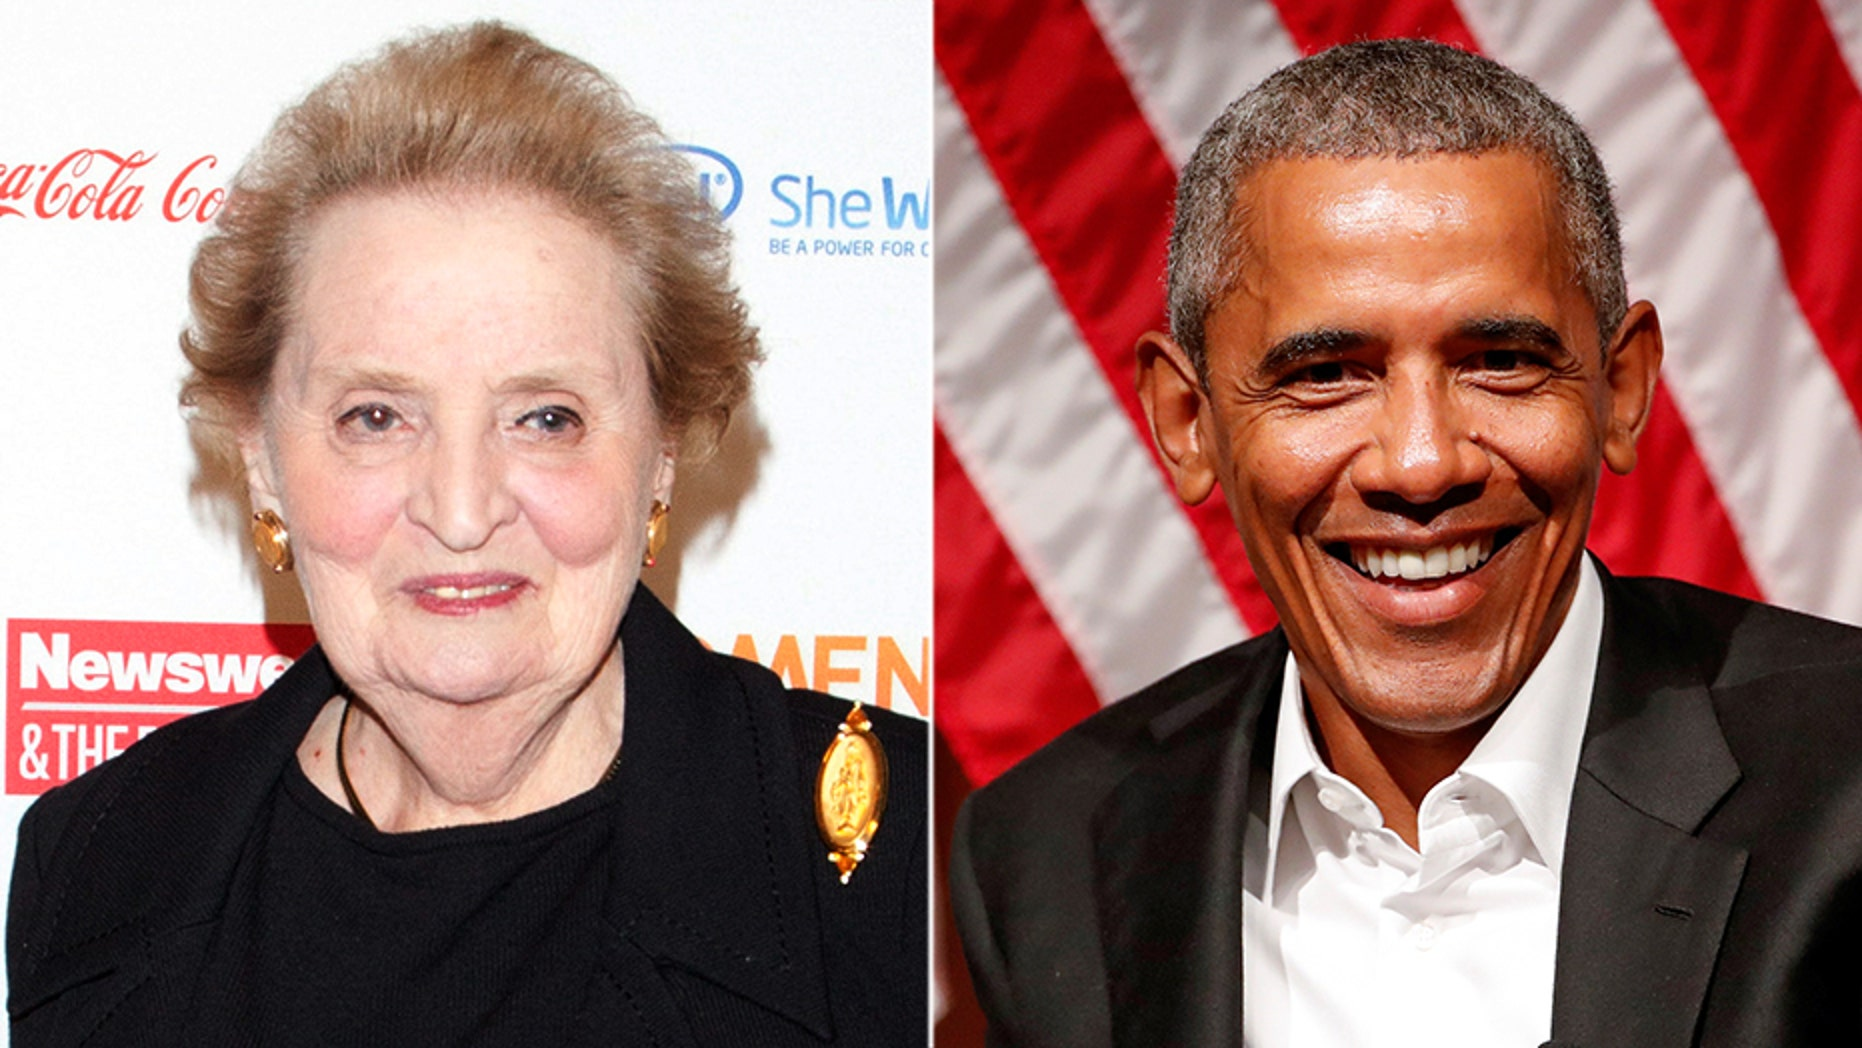 Former Secretary of State Madeleine Albright criticized Barack Obama for his Syria policy.